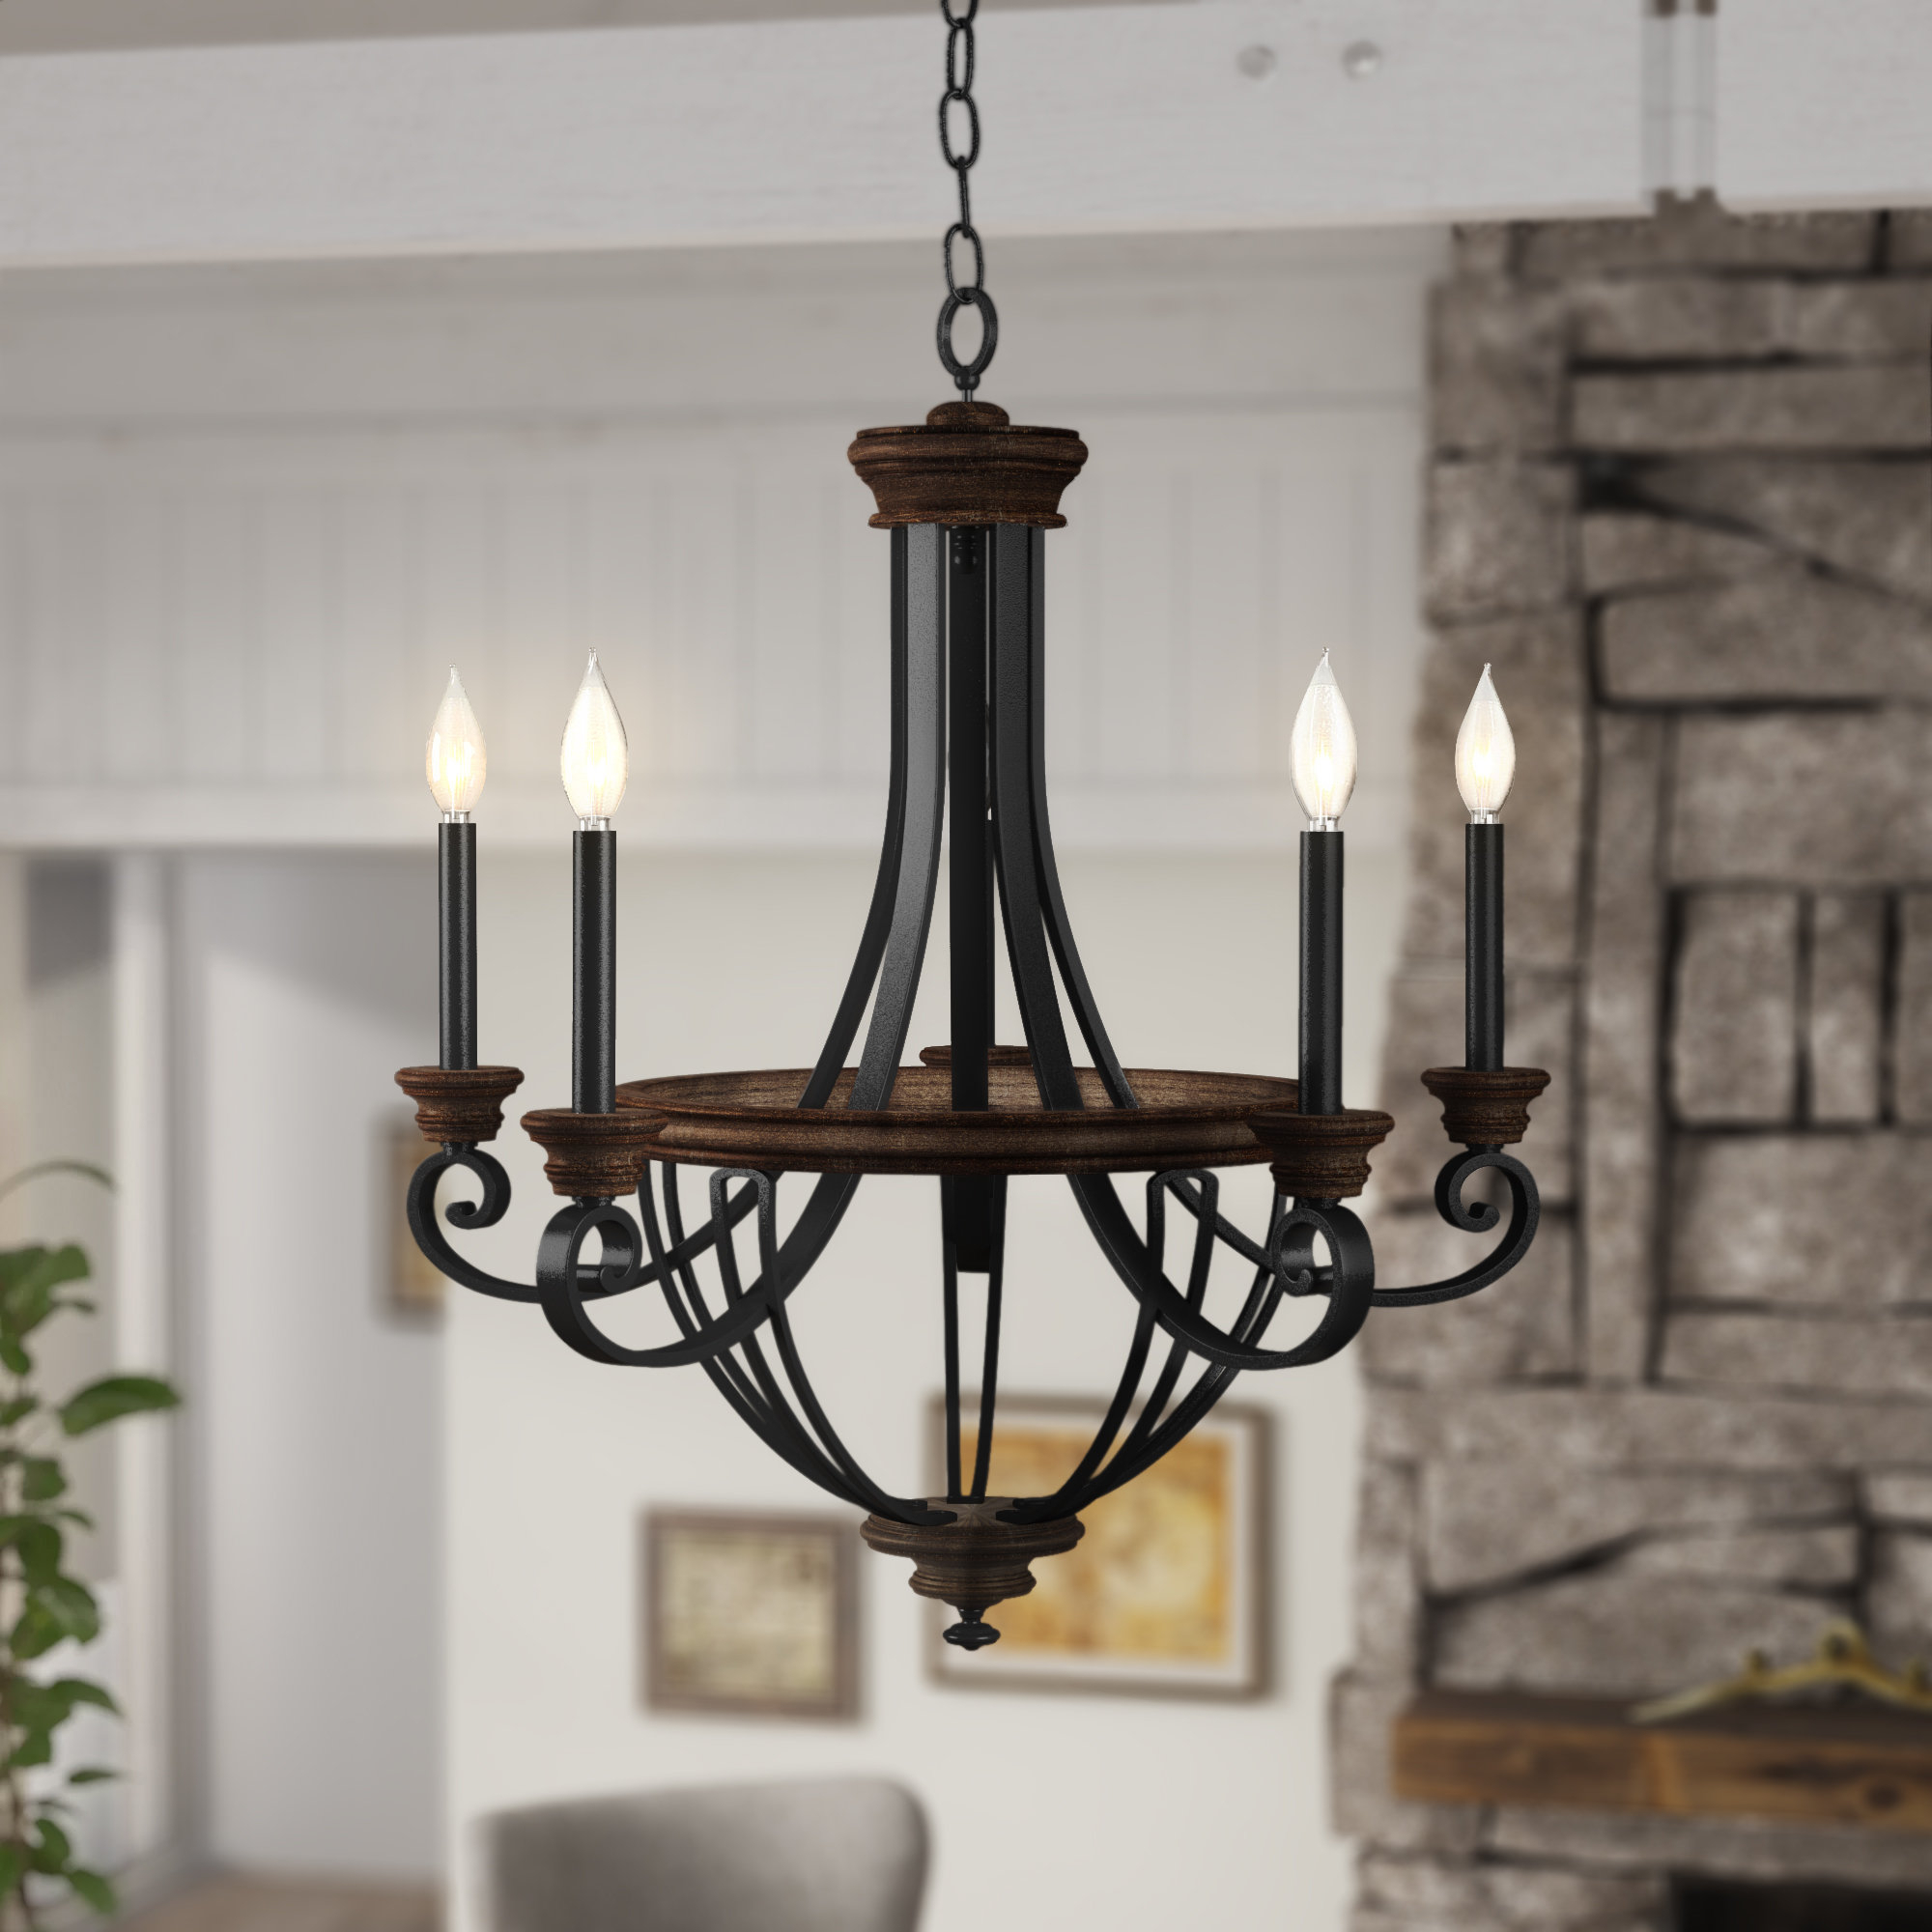 Nanteuil 5 Light Empire Chandelier In Widely Used Kenna 5 Light Empire Chandeliers (View 4 of 25)